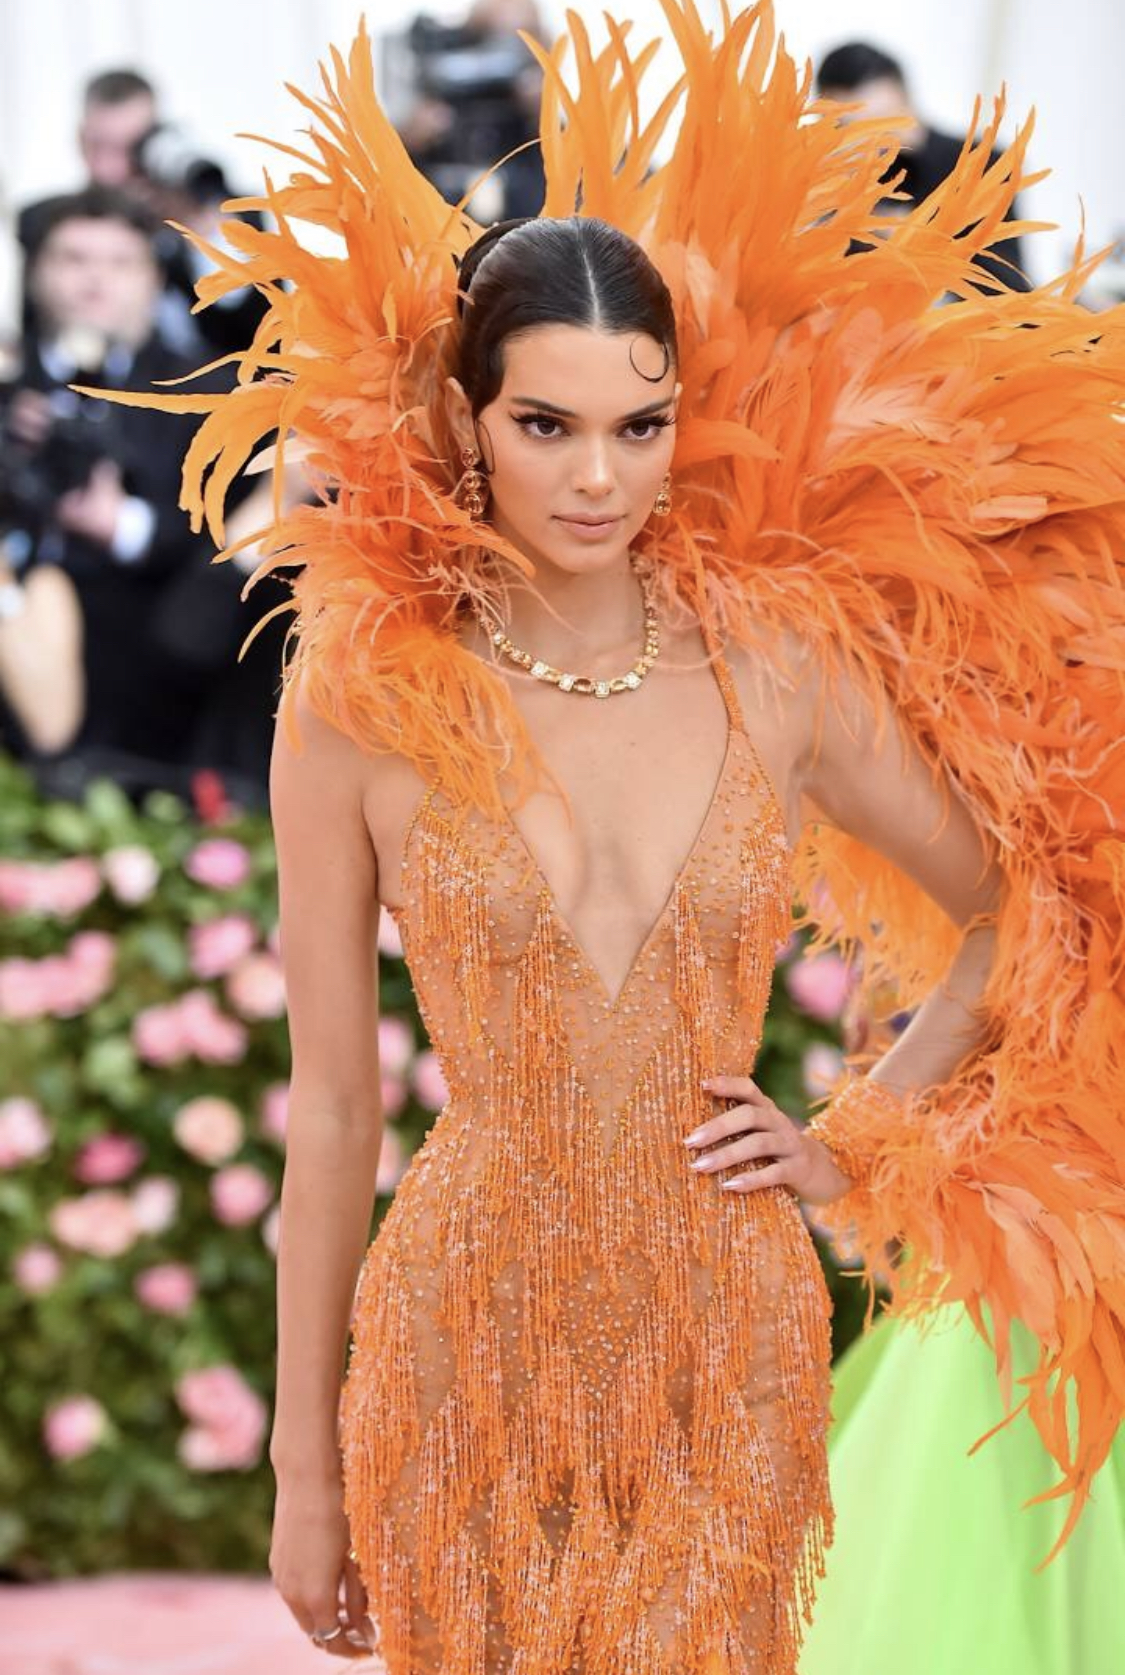 BIRDS OF PARADISE: KENDALL JENNER IN VERSACE